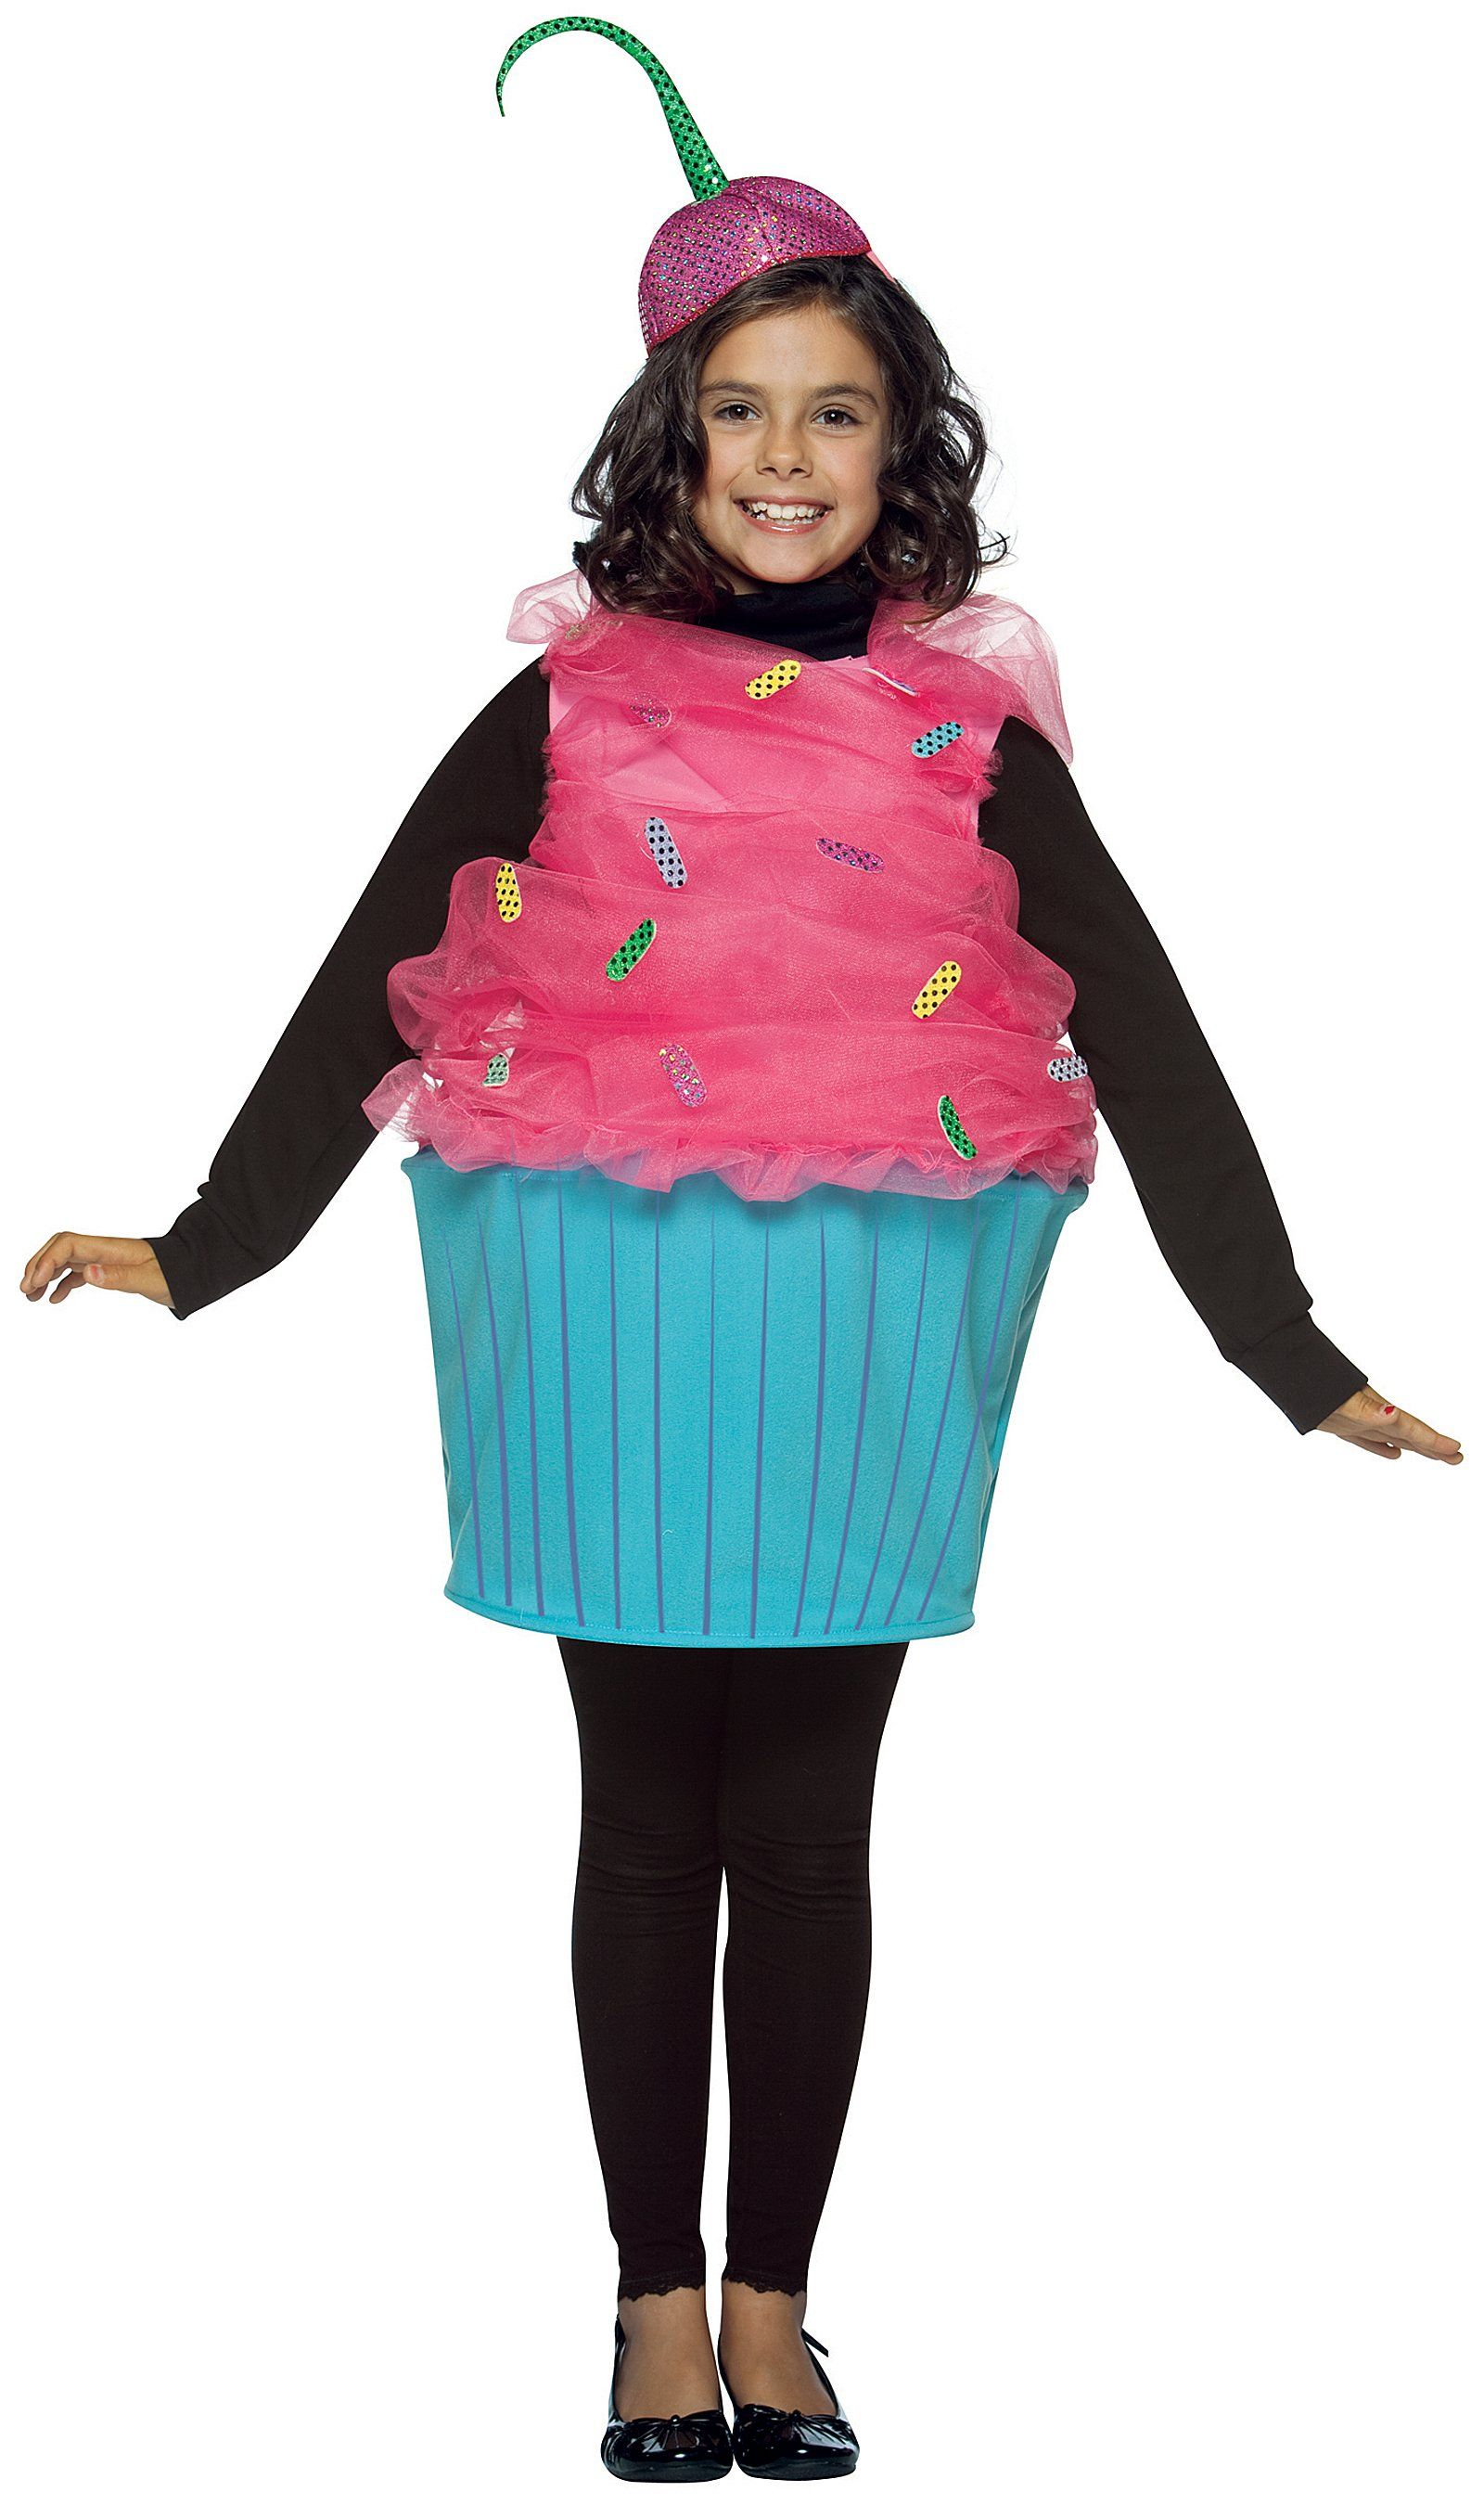 Sweet Eats Cupcake Child Costume from